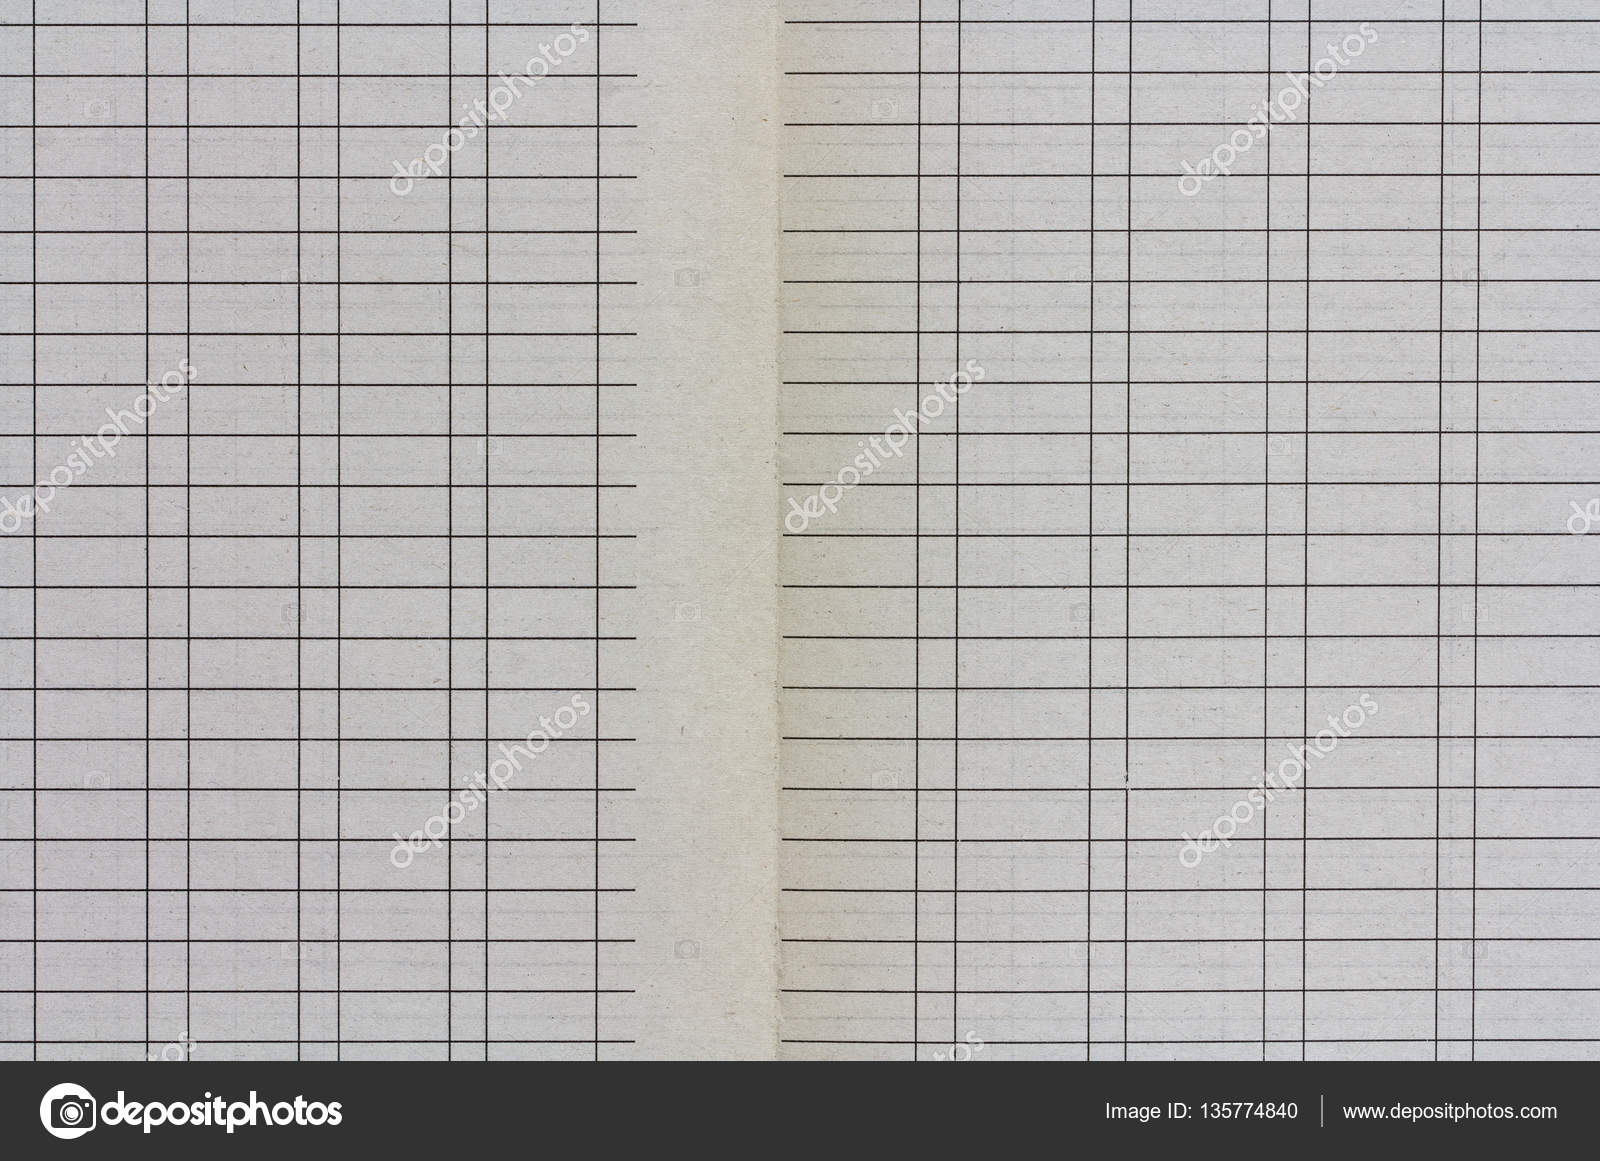 open sheets of old yellowed lined paper with lines and column